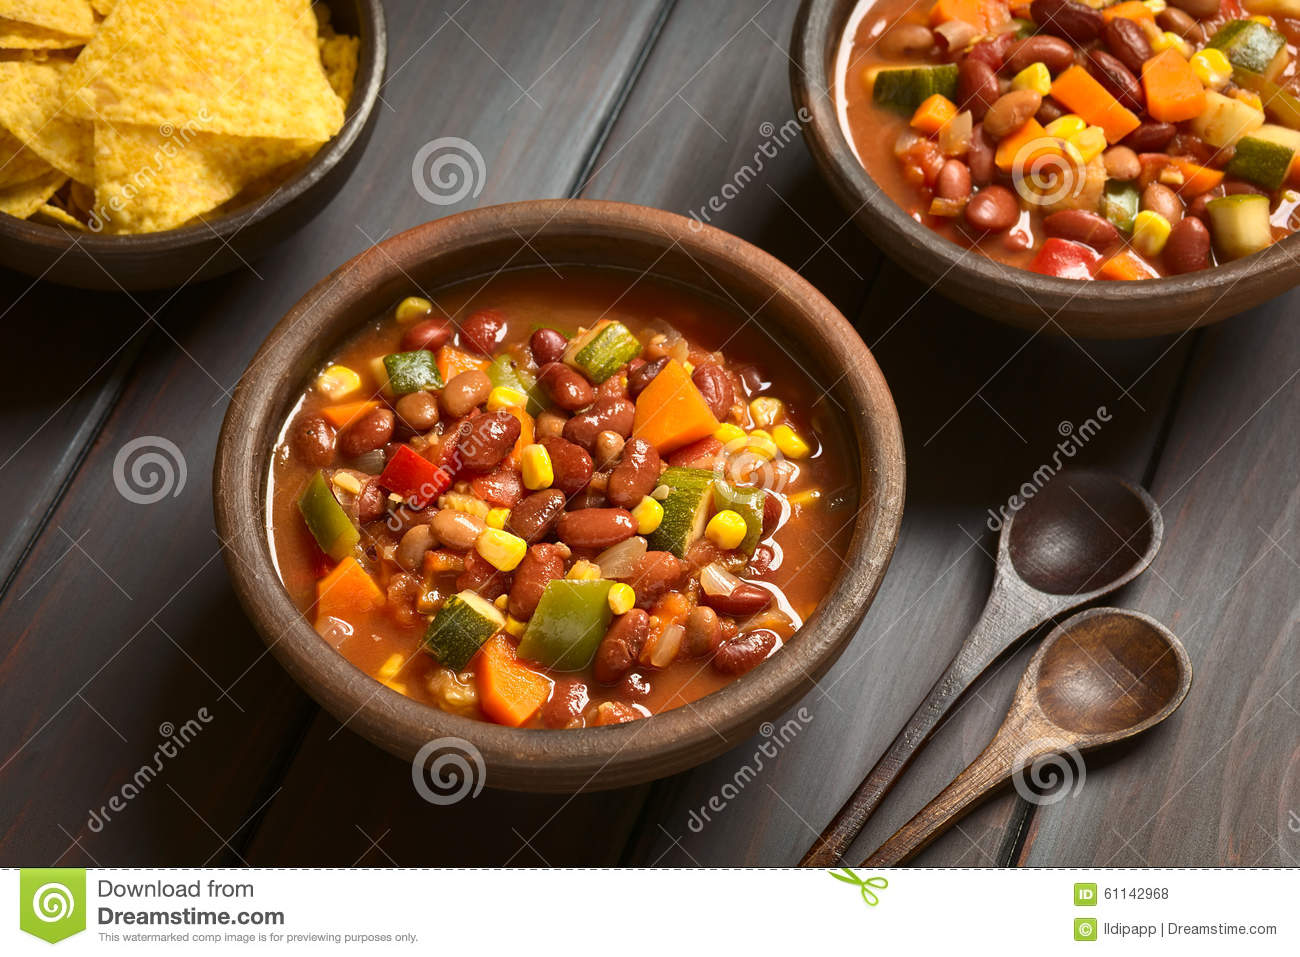 Vegetarian Chili Dish Stock Photo - Image: 61142968